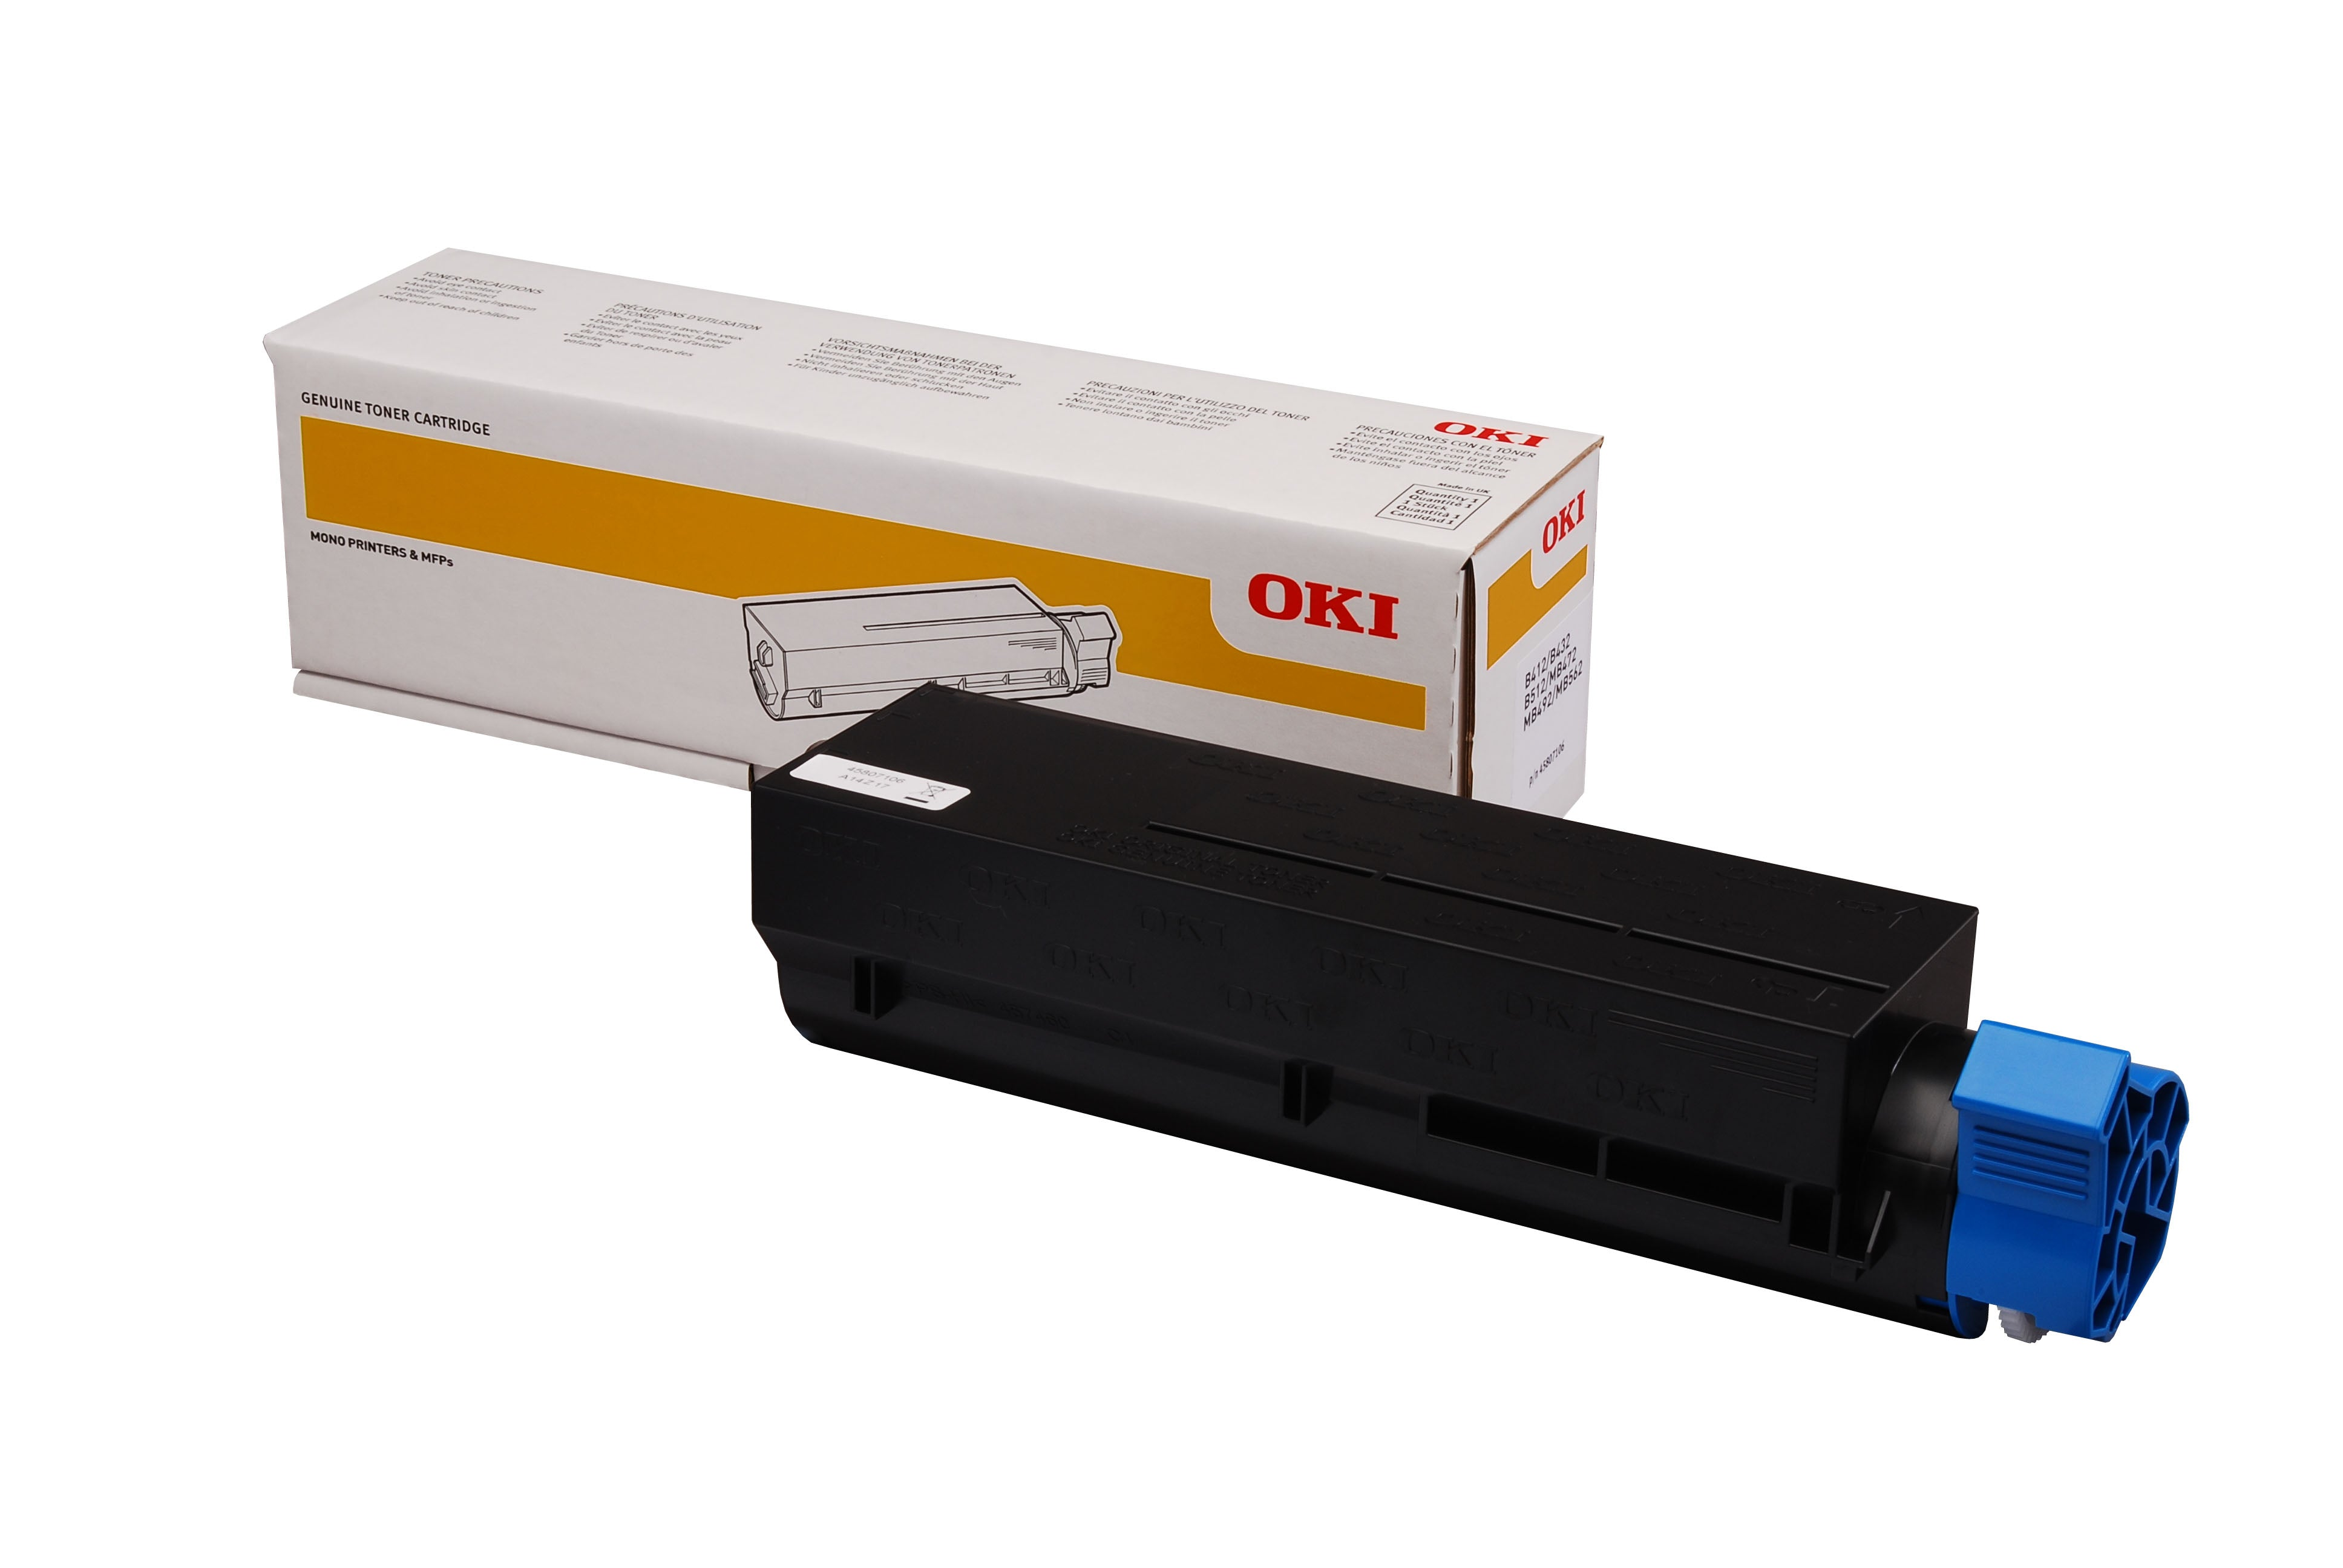 OKI MB562dnw Black Toner (3,000 Pages) 45807103